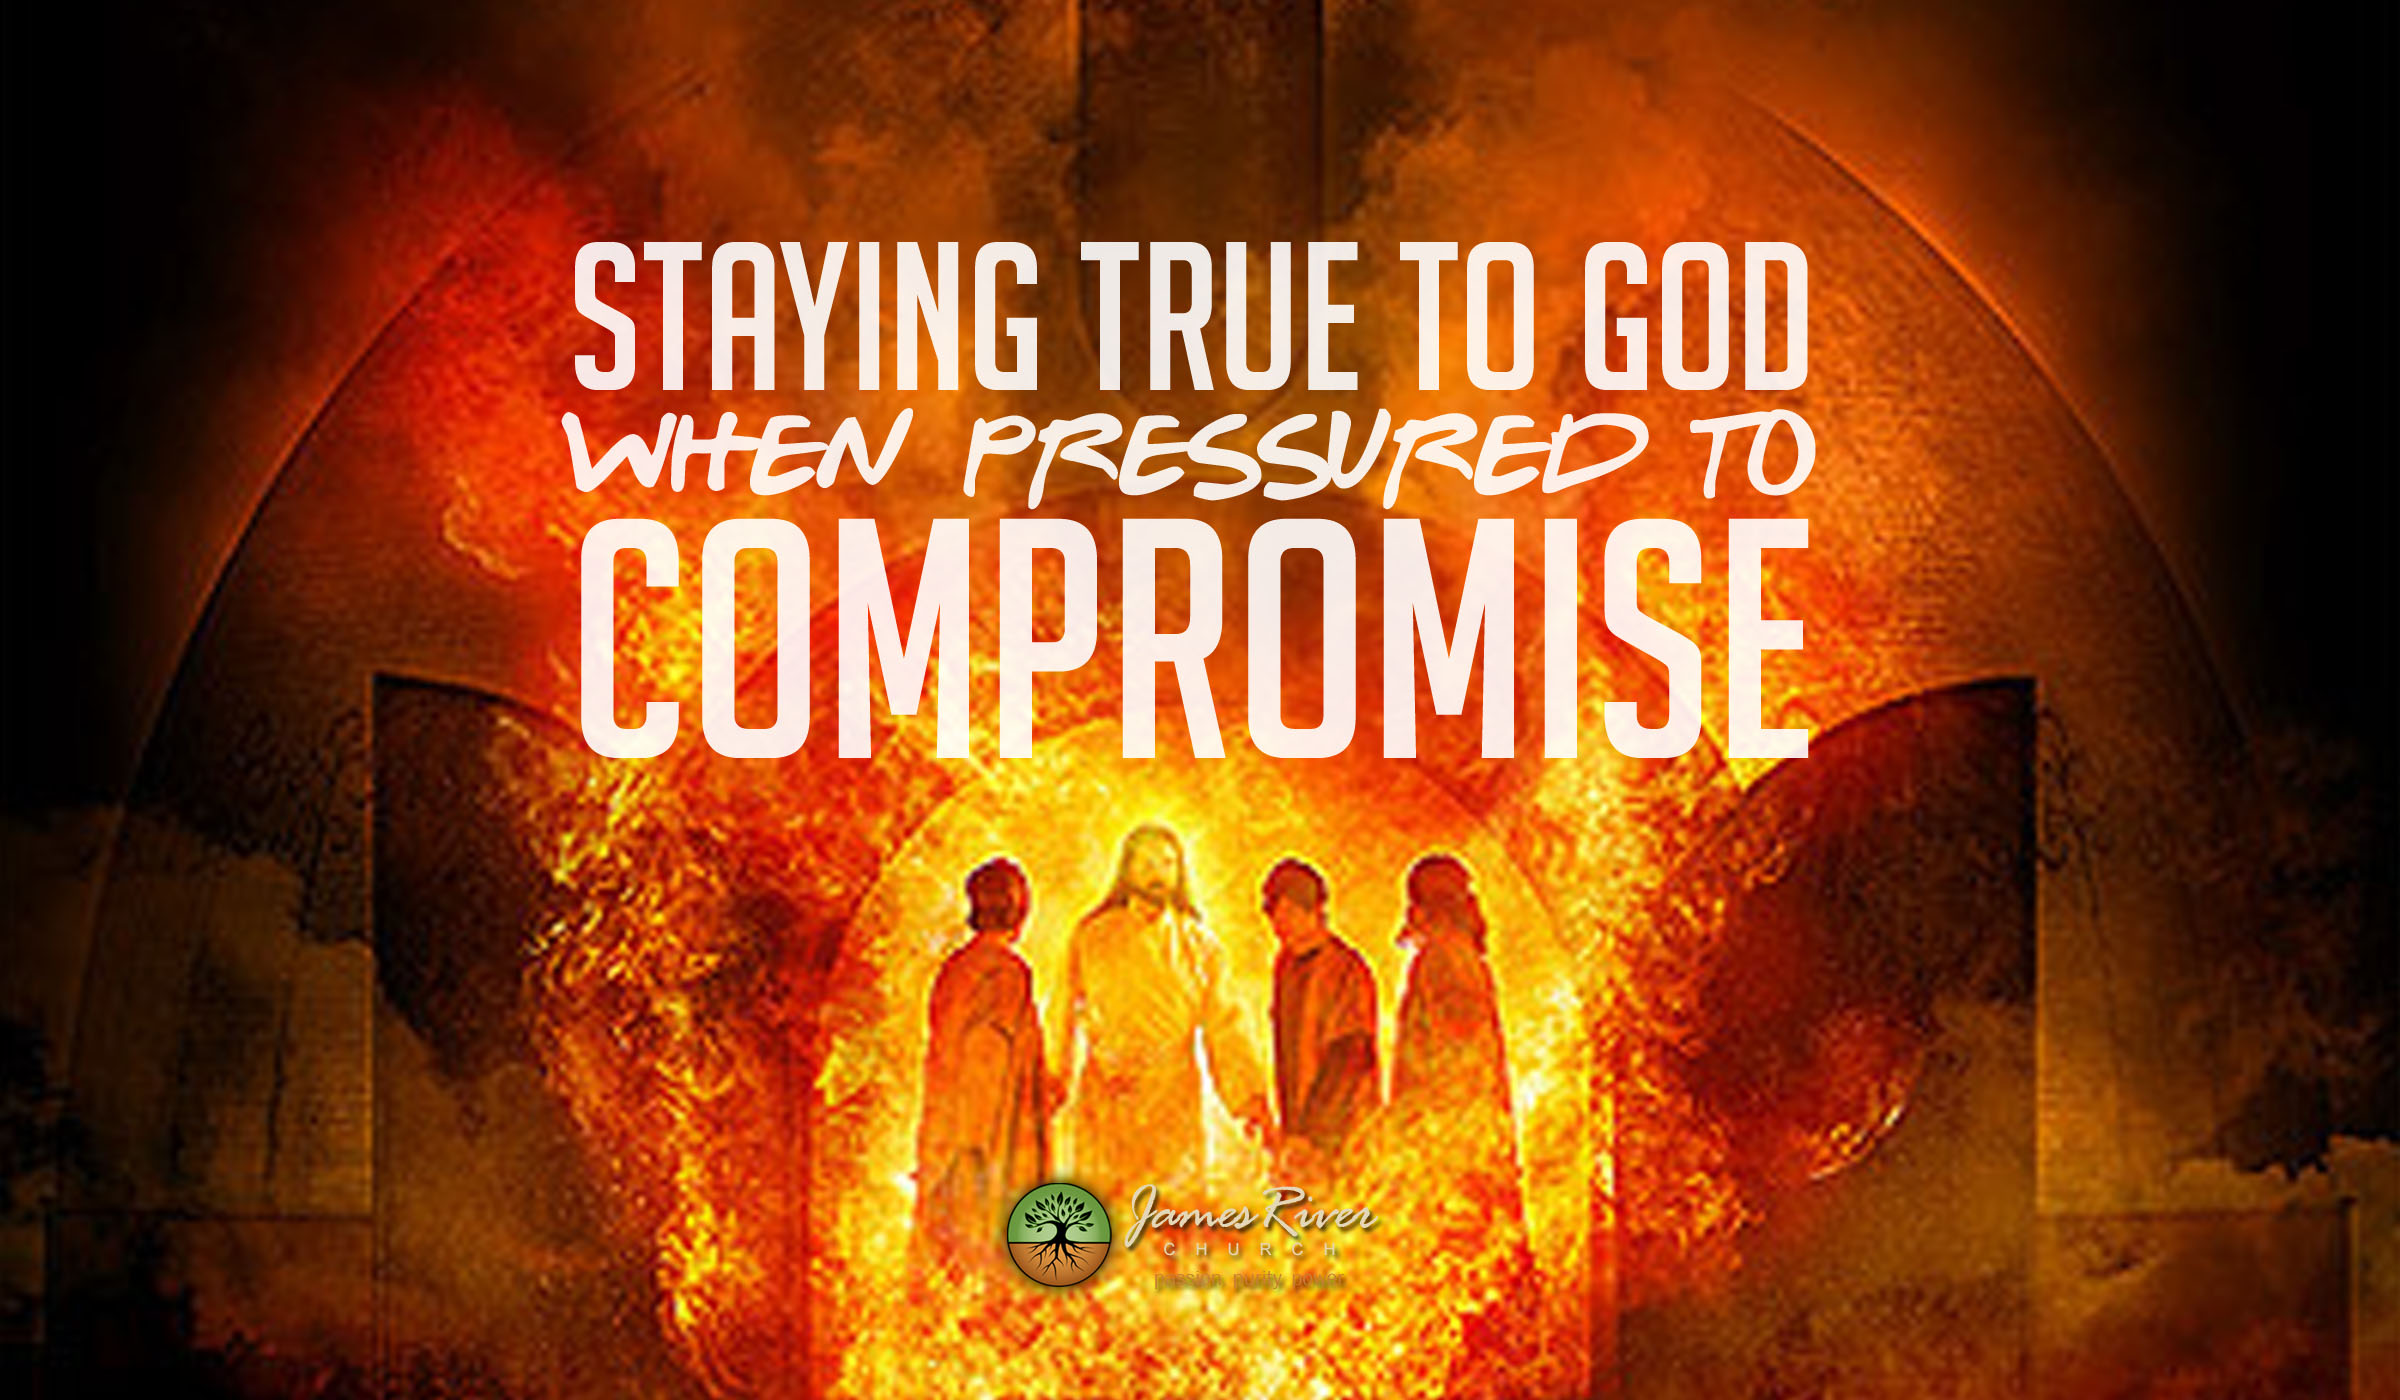 Staying True To God When Pressured To Compromise